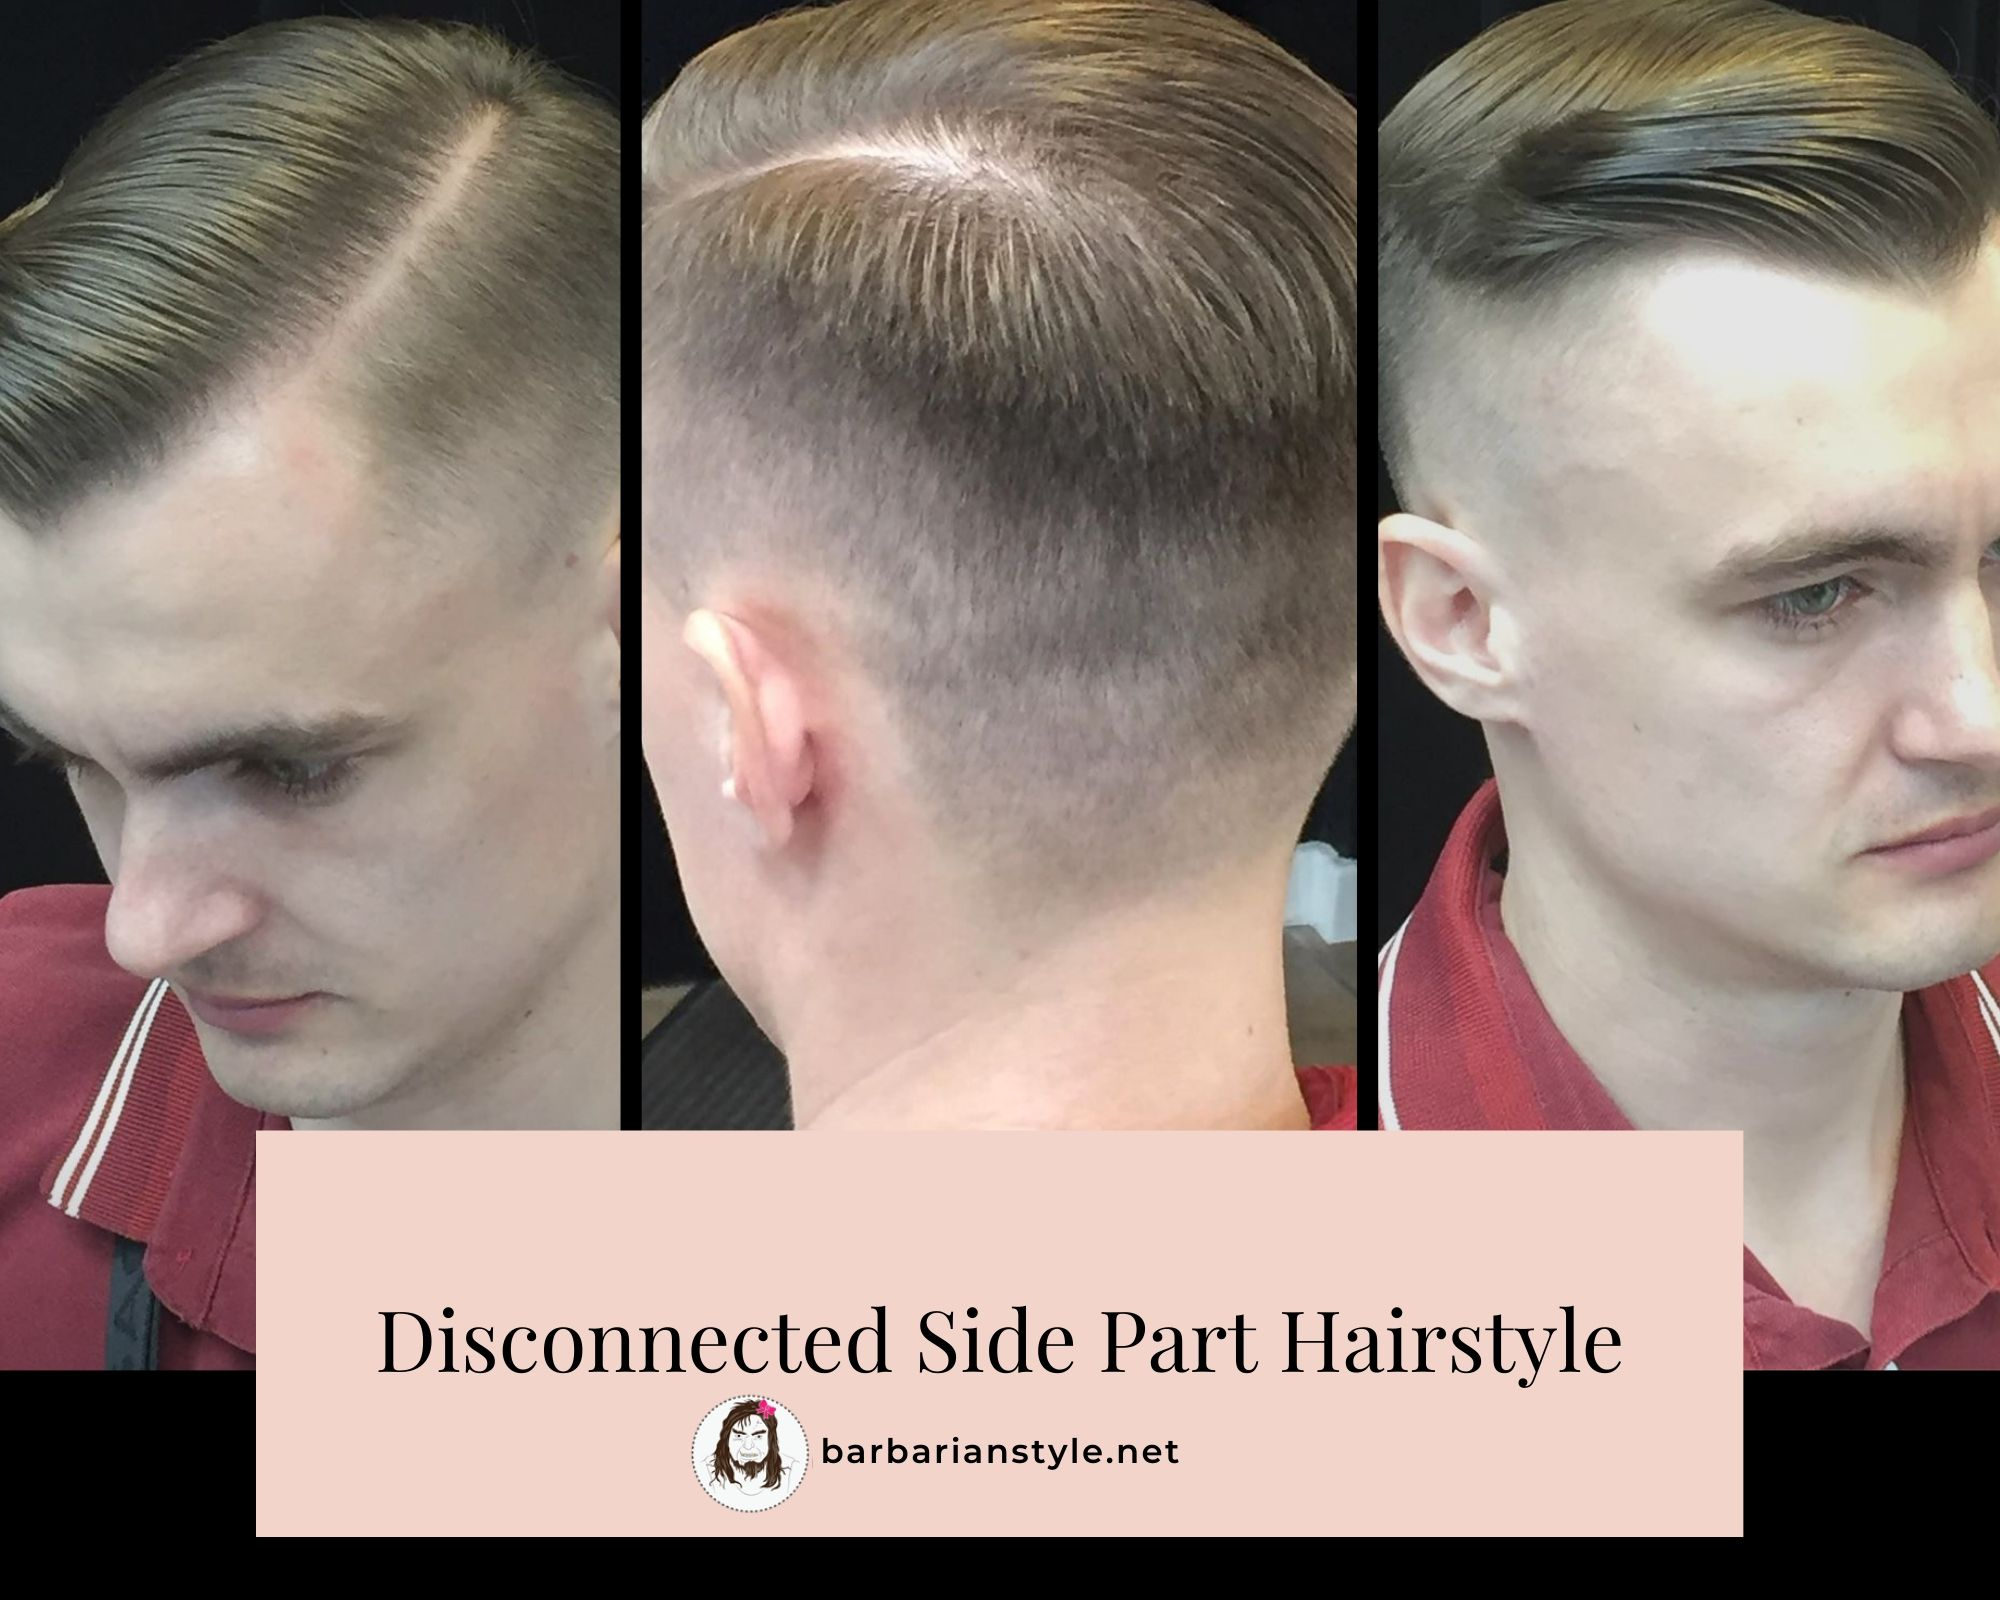 Disconnected Side Part Hairstyle